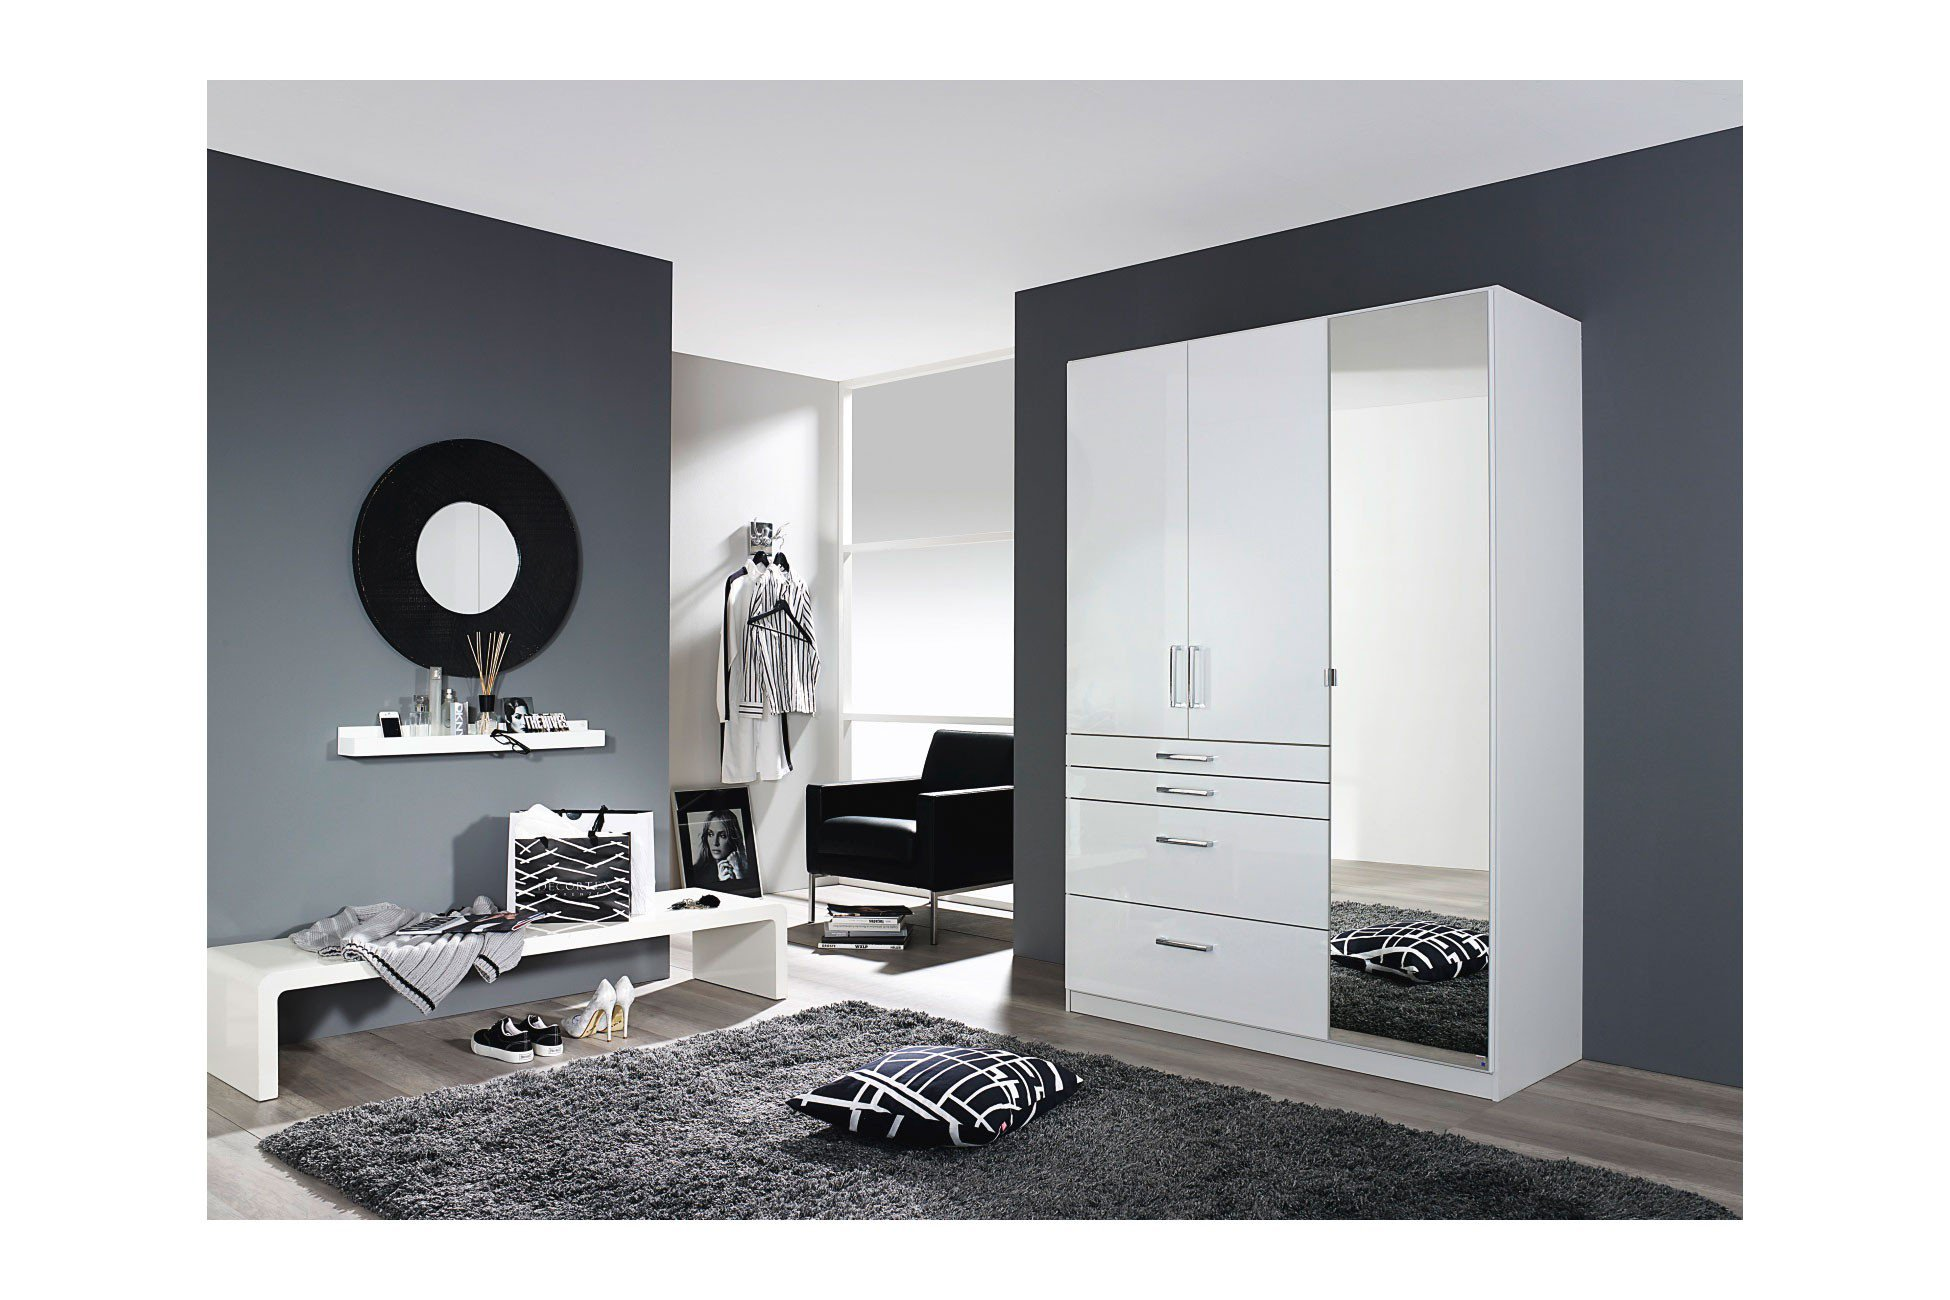 rauch homburg kombischrank front hochglanz wei m bel letz ihr online shop. Black Bedroom Furniture Sets. Home Design Ideas